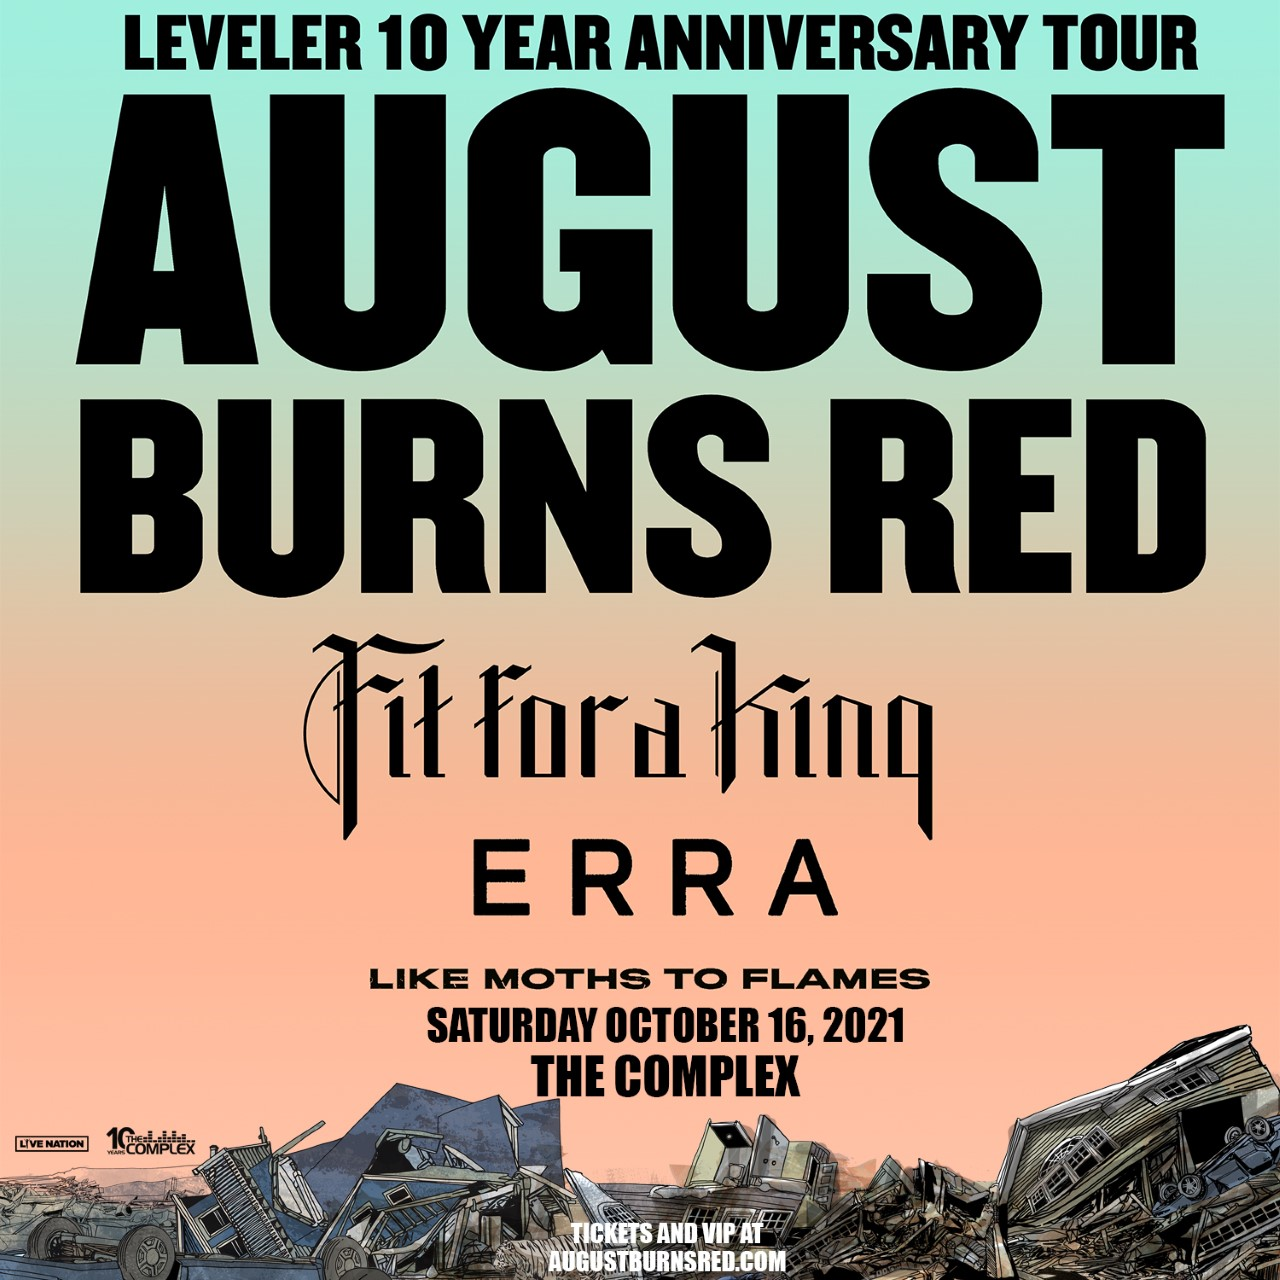 Win 2 Tix to Leveler 10 Year Anniversary Tour: August Burns Red, Fit For a King, Erra, and Like Moths to Flames on Saturday October 16th at the Complex